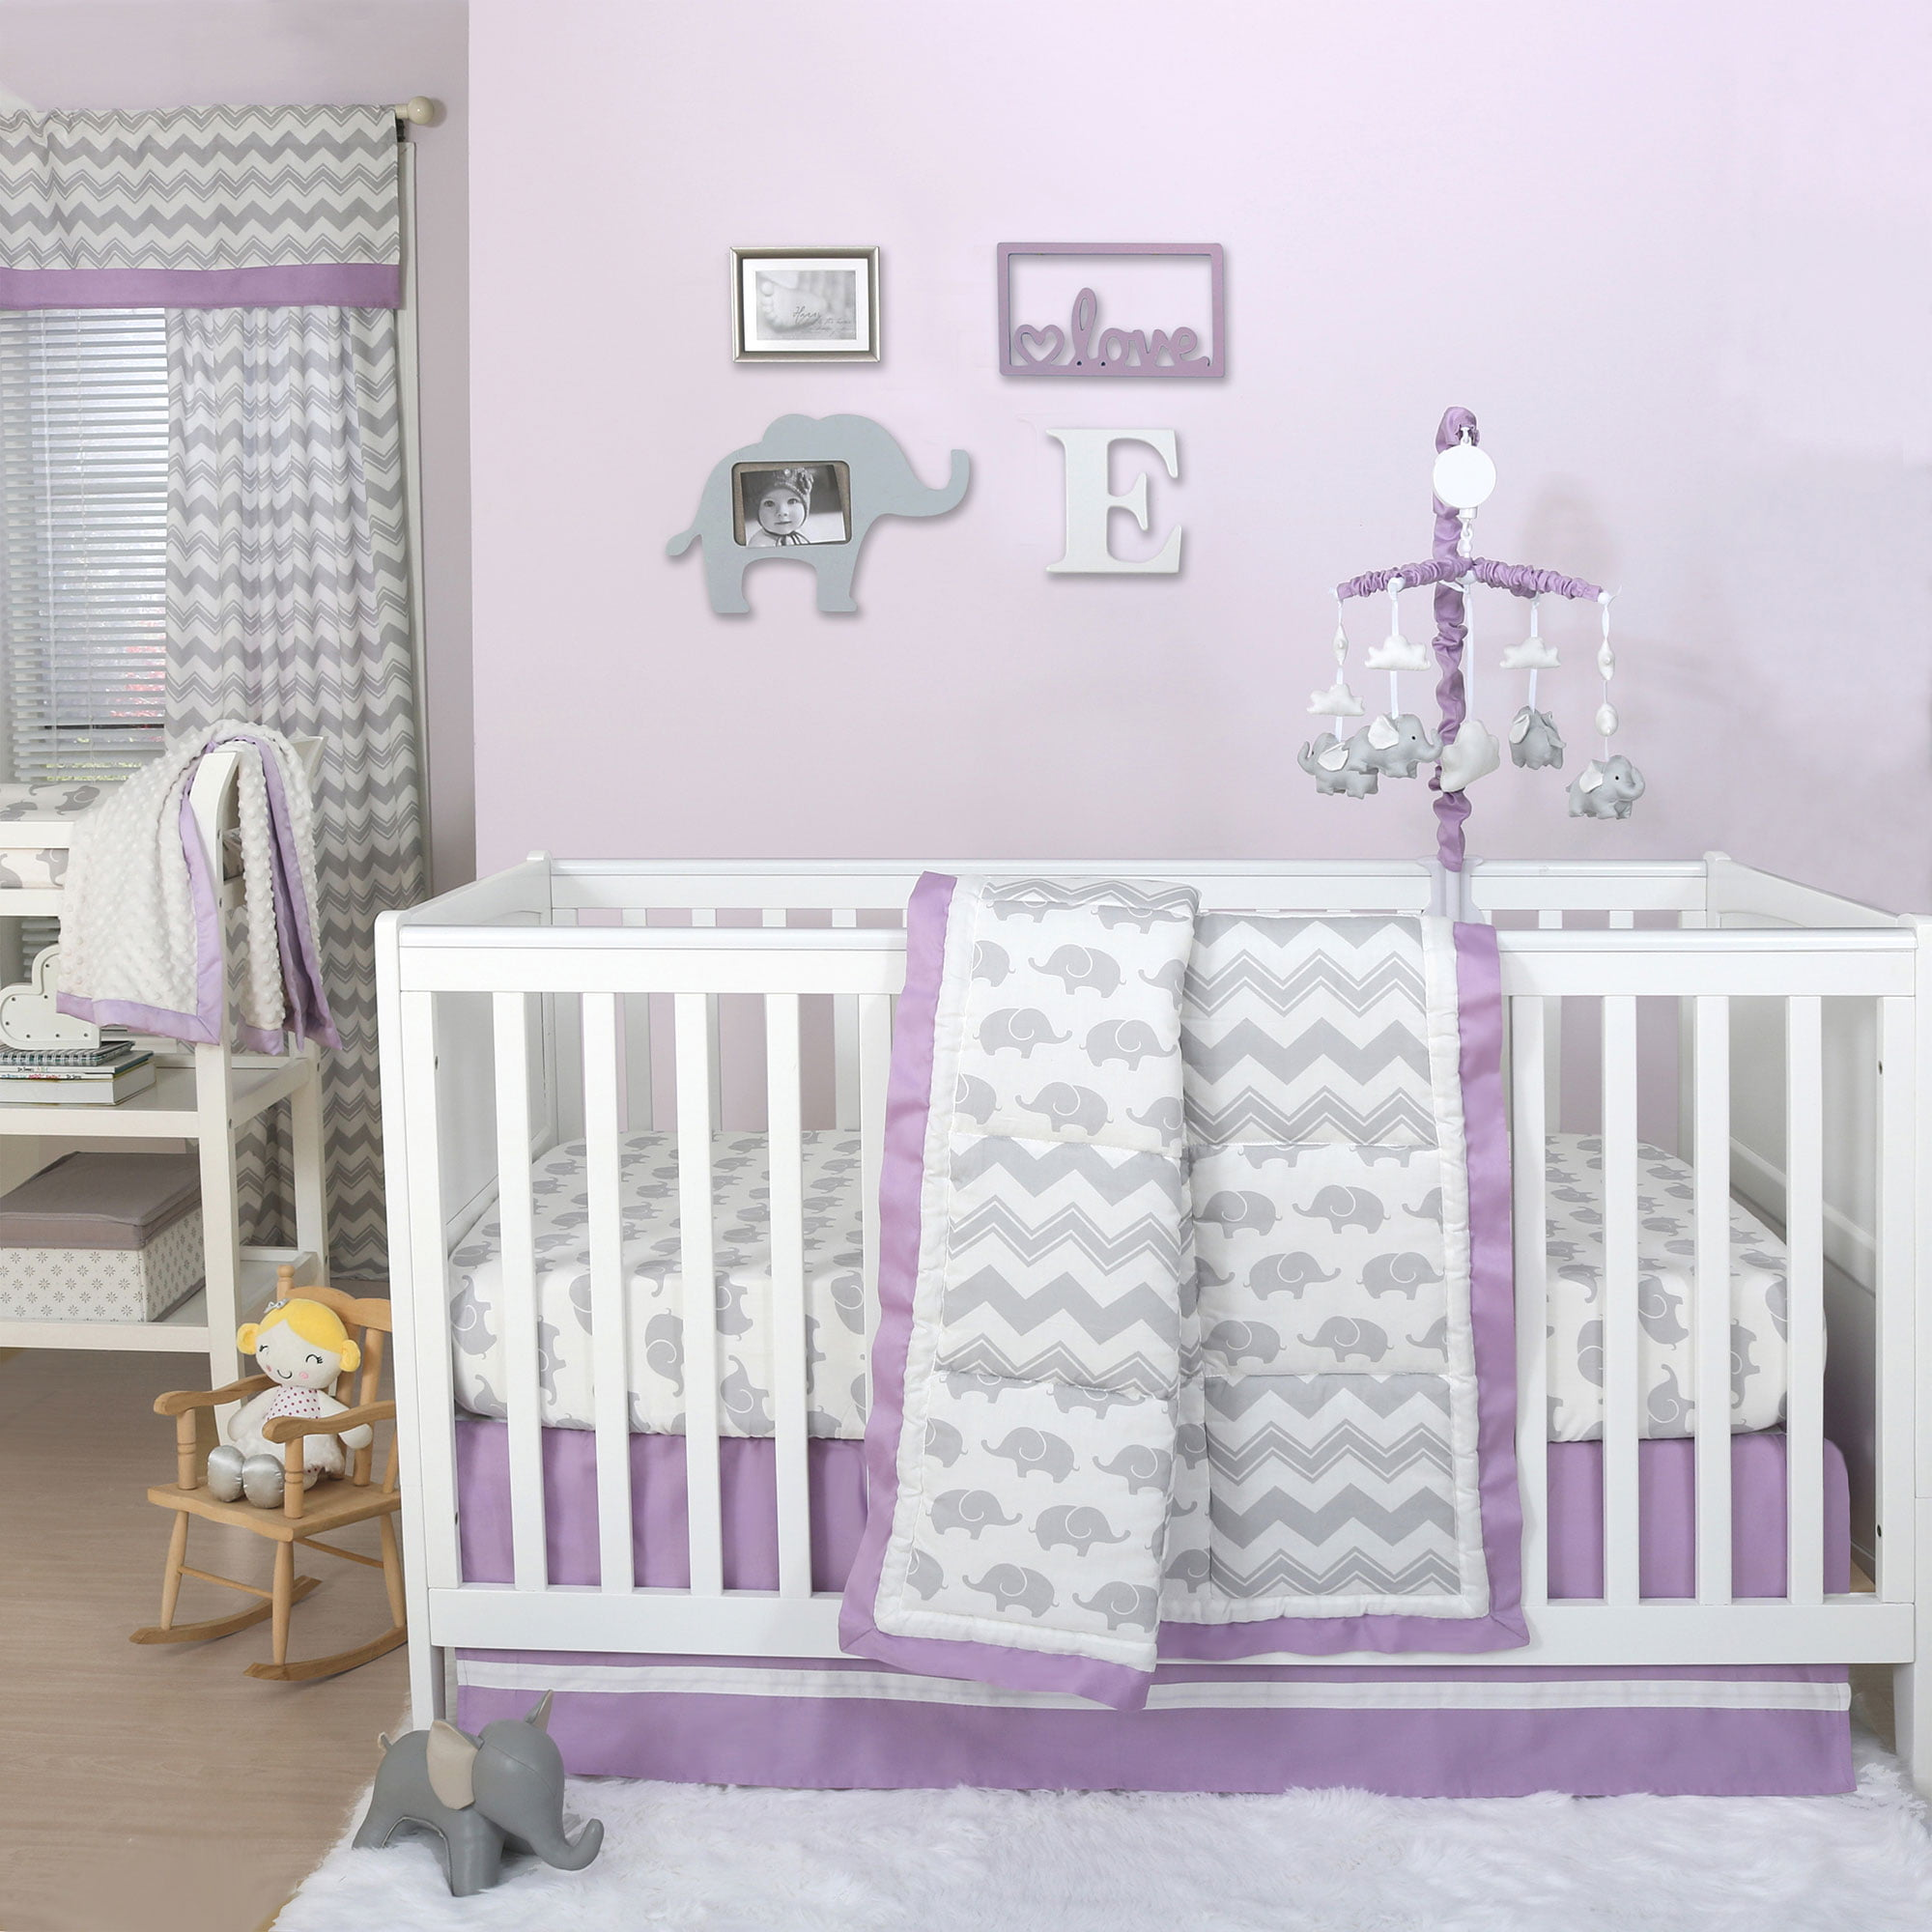 The Peanut Shell 3 Piece Baby Crib Bedding Set Grey Elephant And Zig Zag Patchwork With Purple Trim 100 Cotton Quilt Skirt Sheet